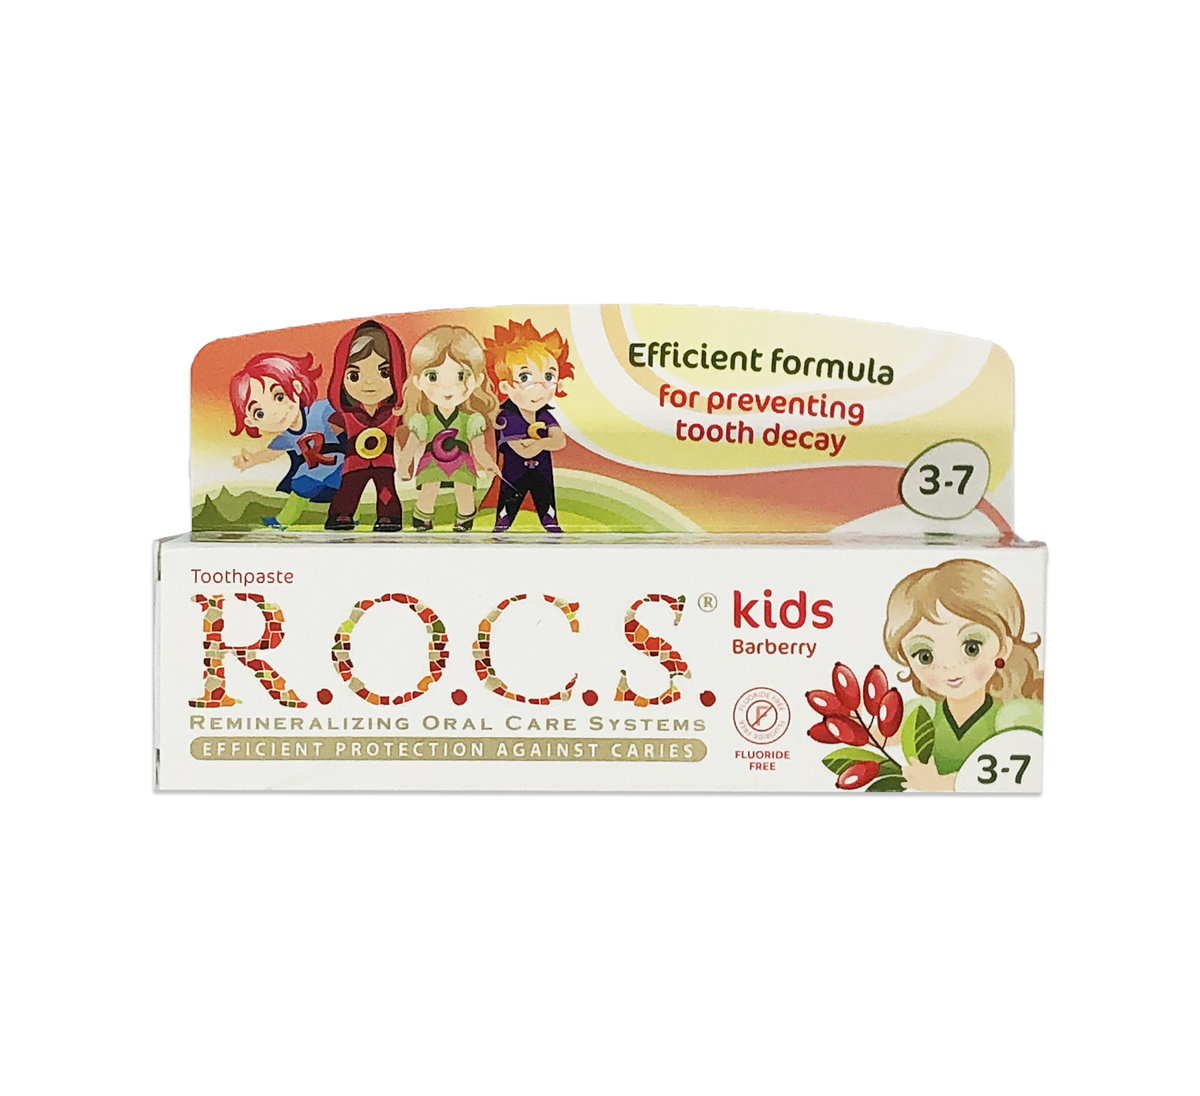 Kids Barberry Toothpaste (w/o Fluoride) 3-7 year old